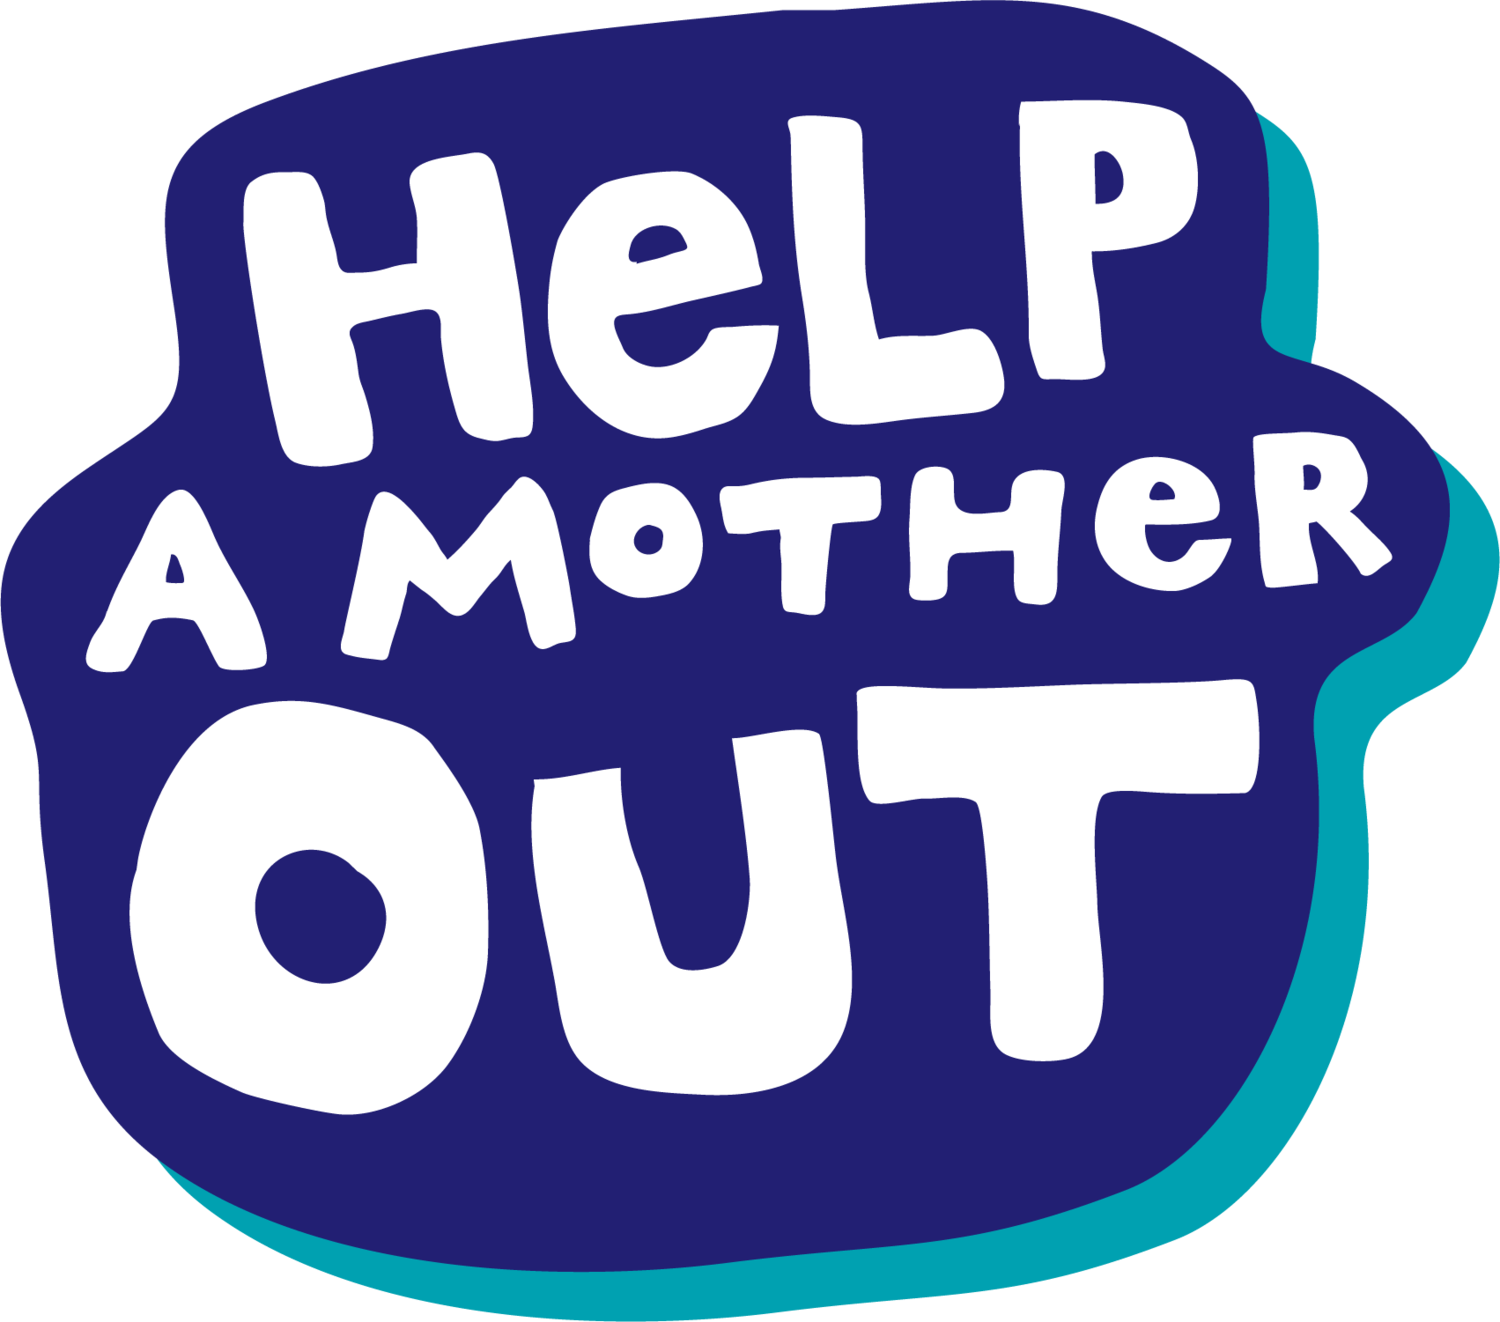 Supporters — Help a Mother Out